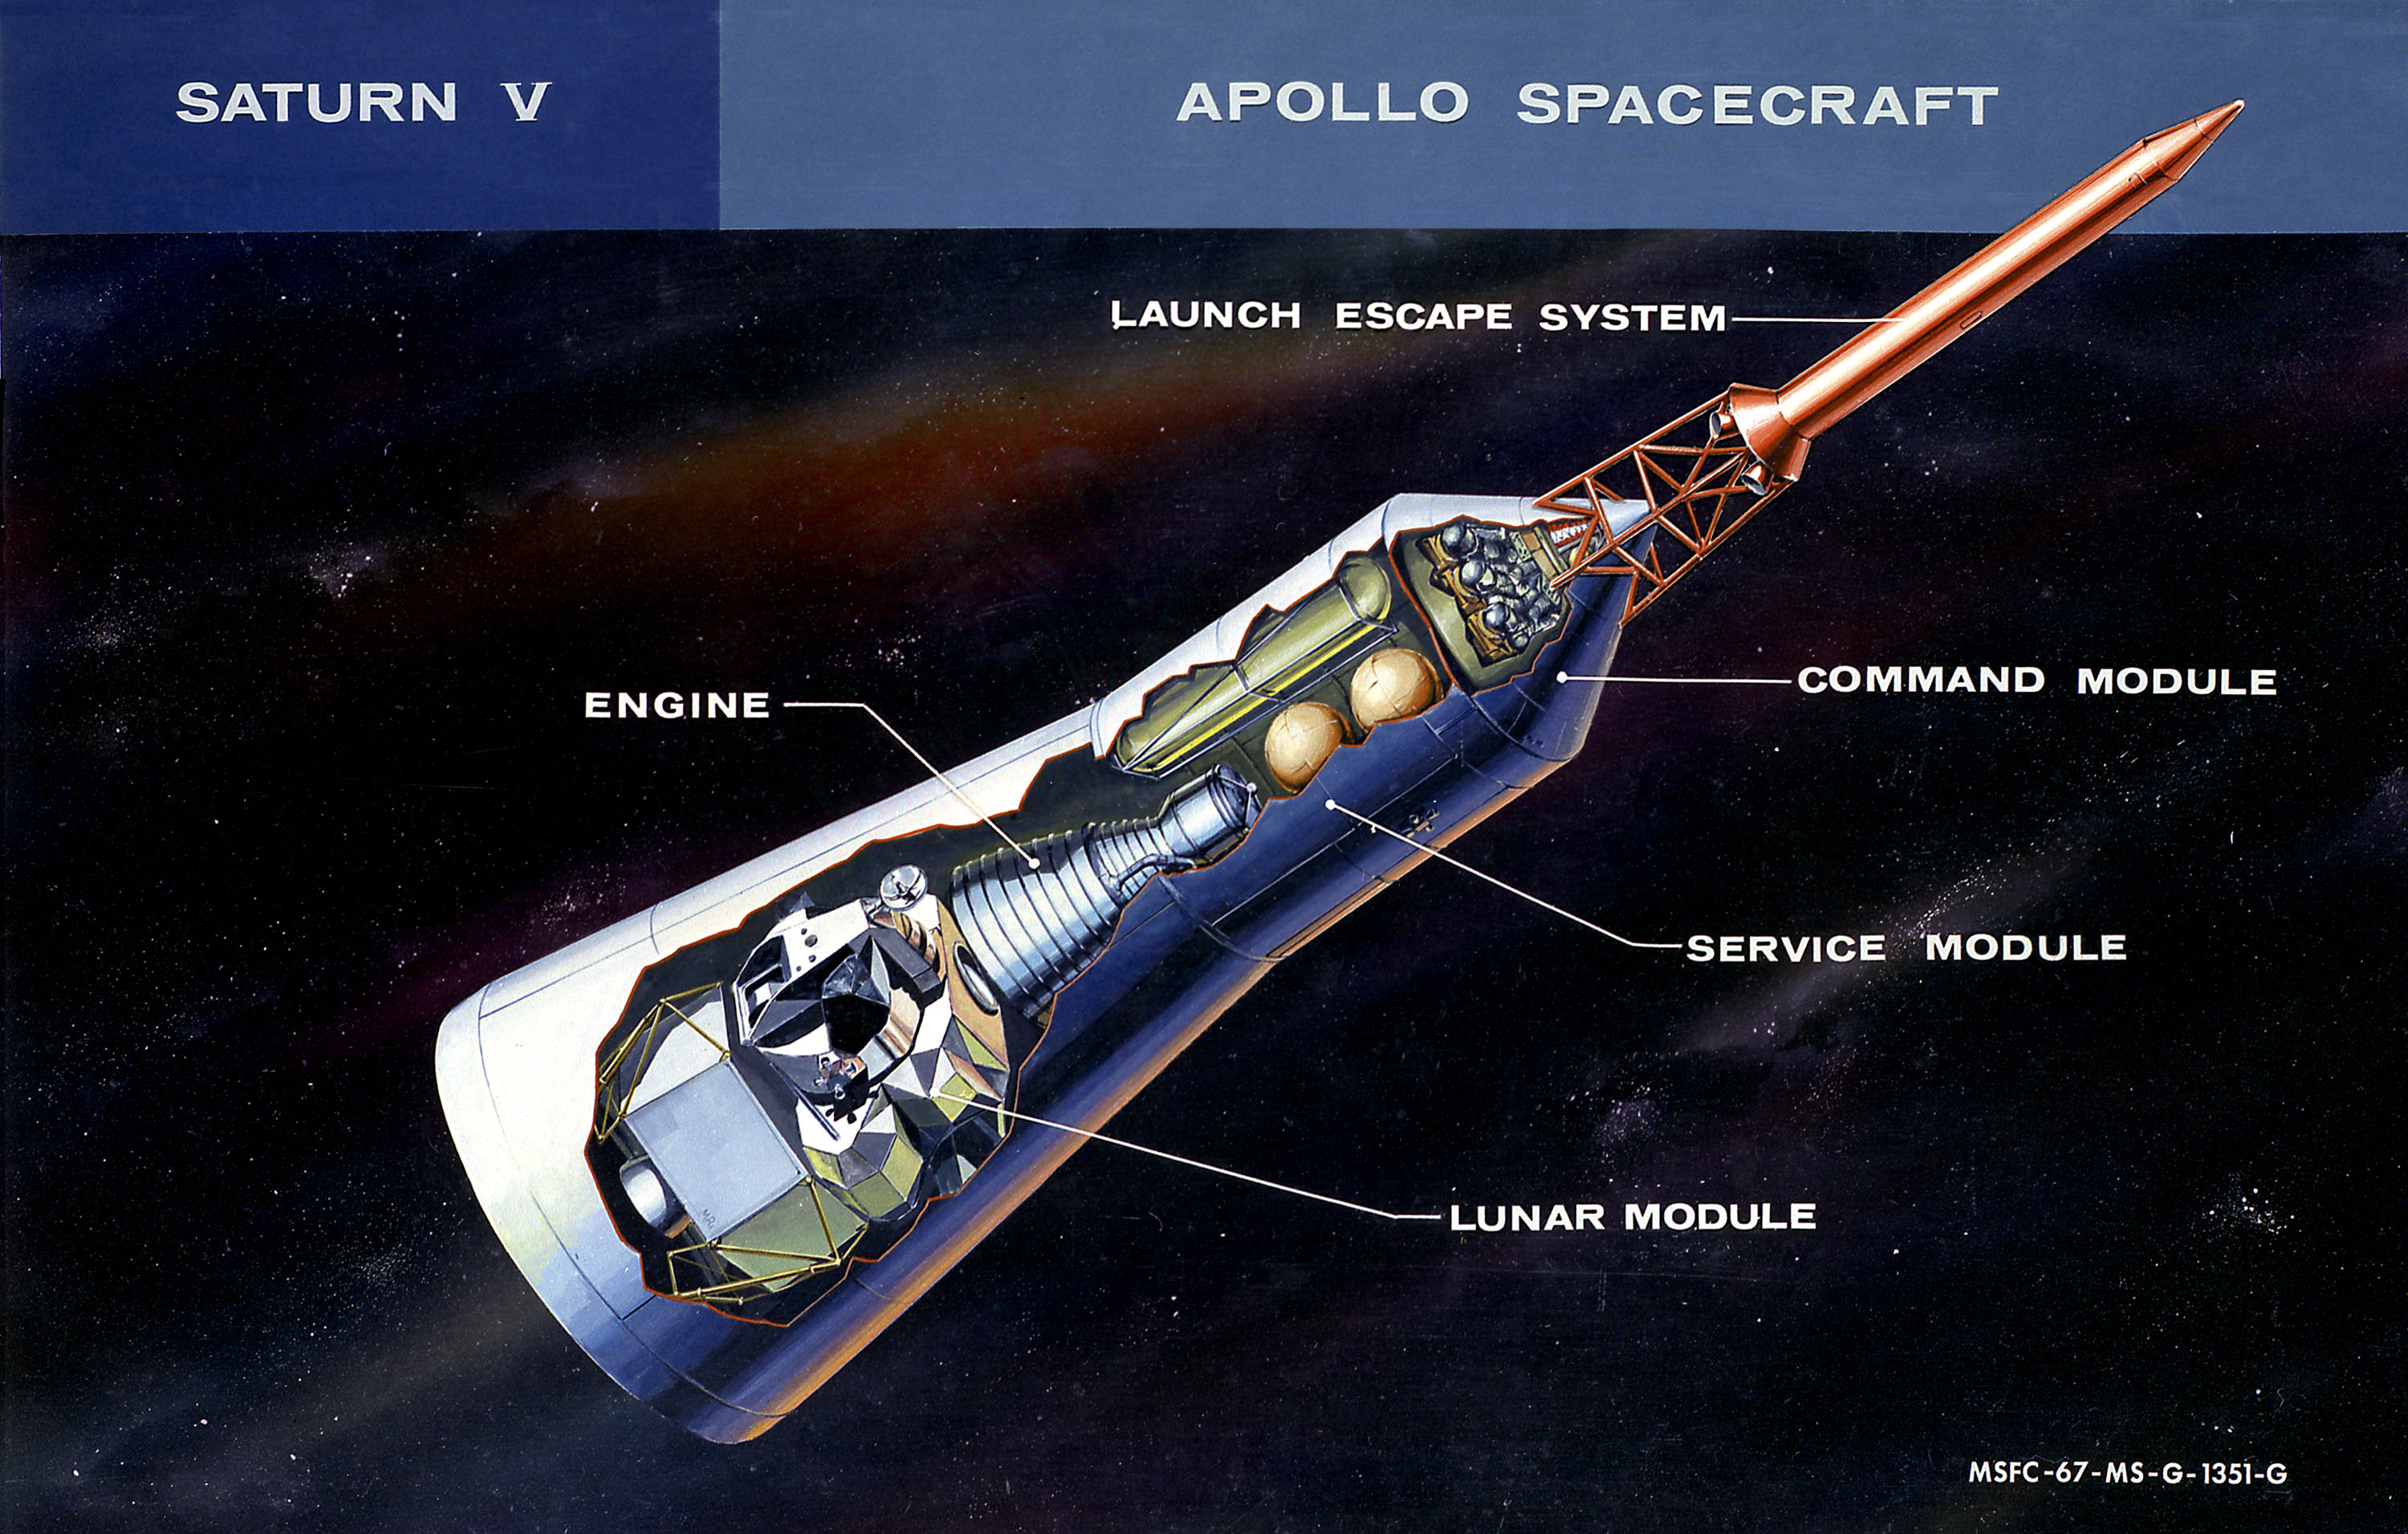 Apollo (spacecraft) - Wikipedia